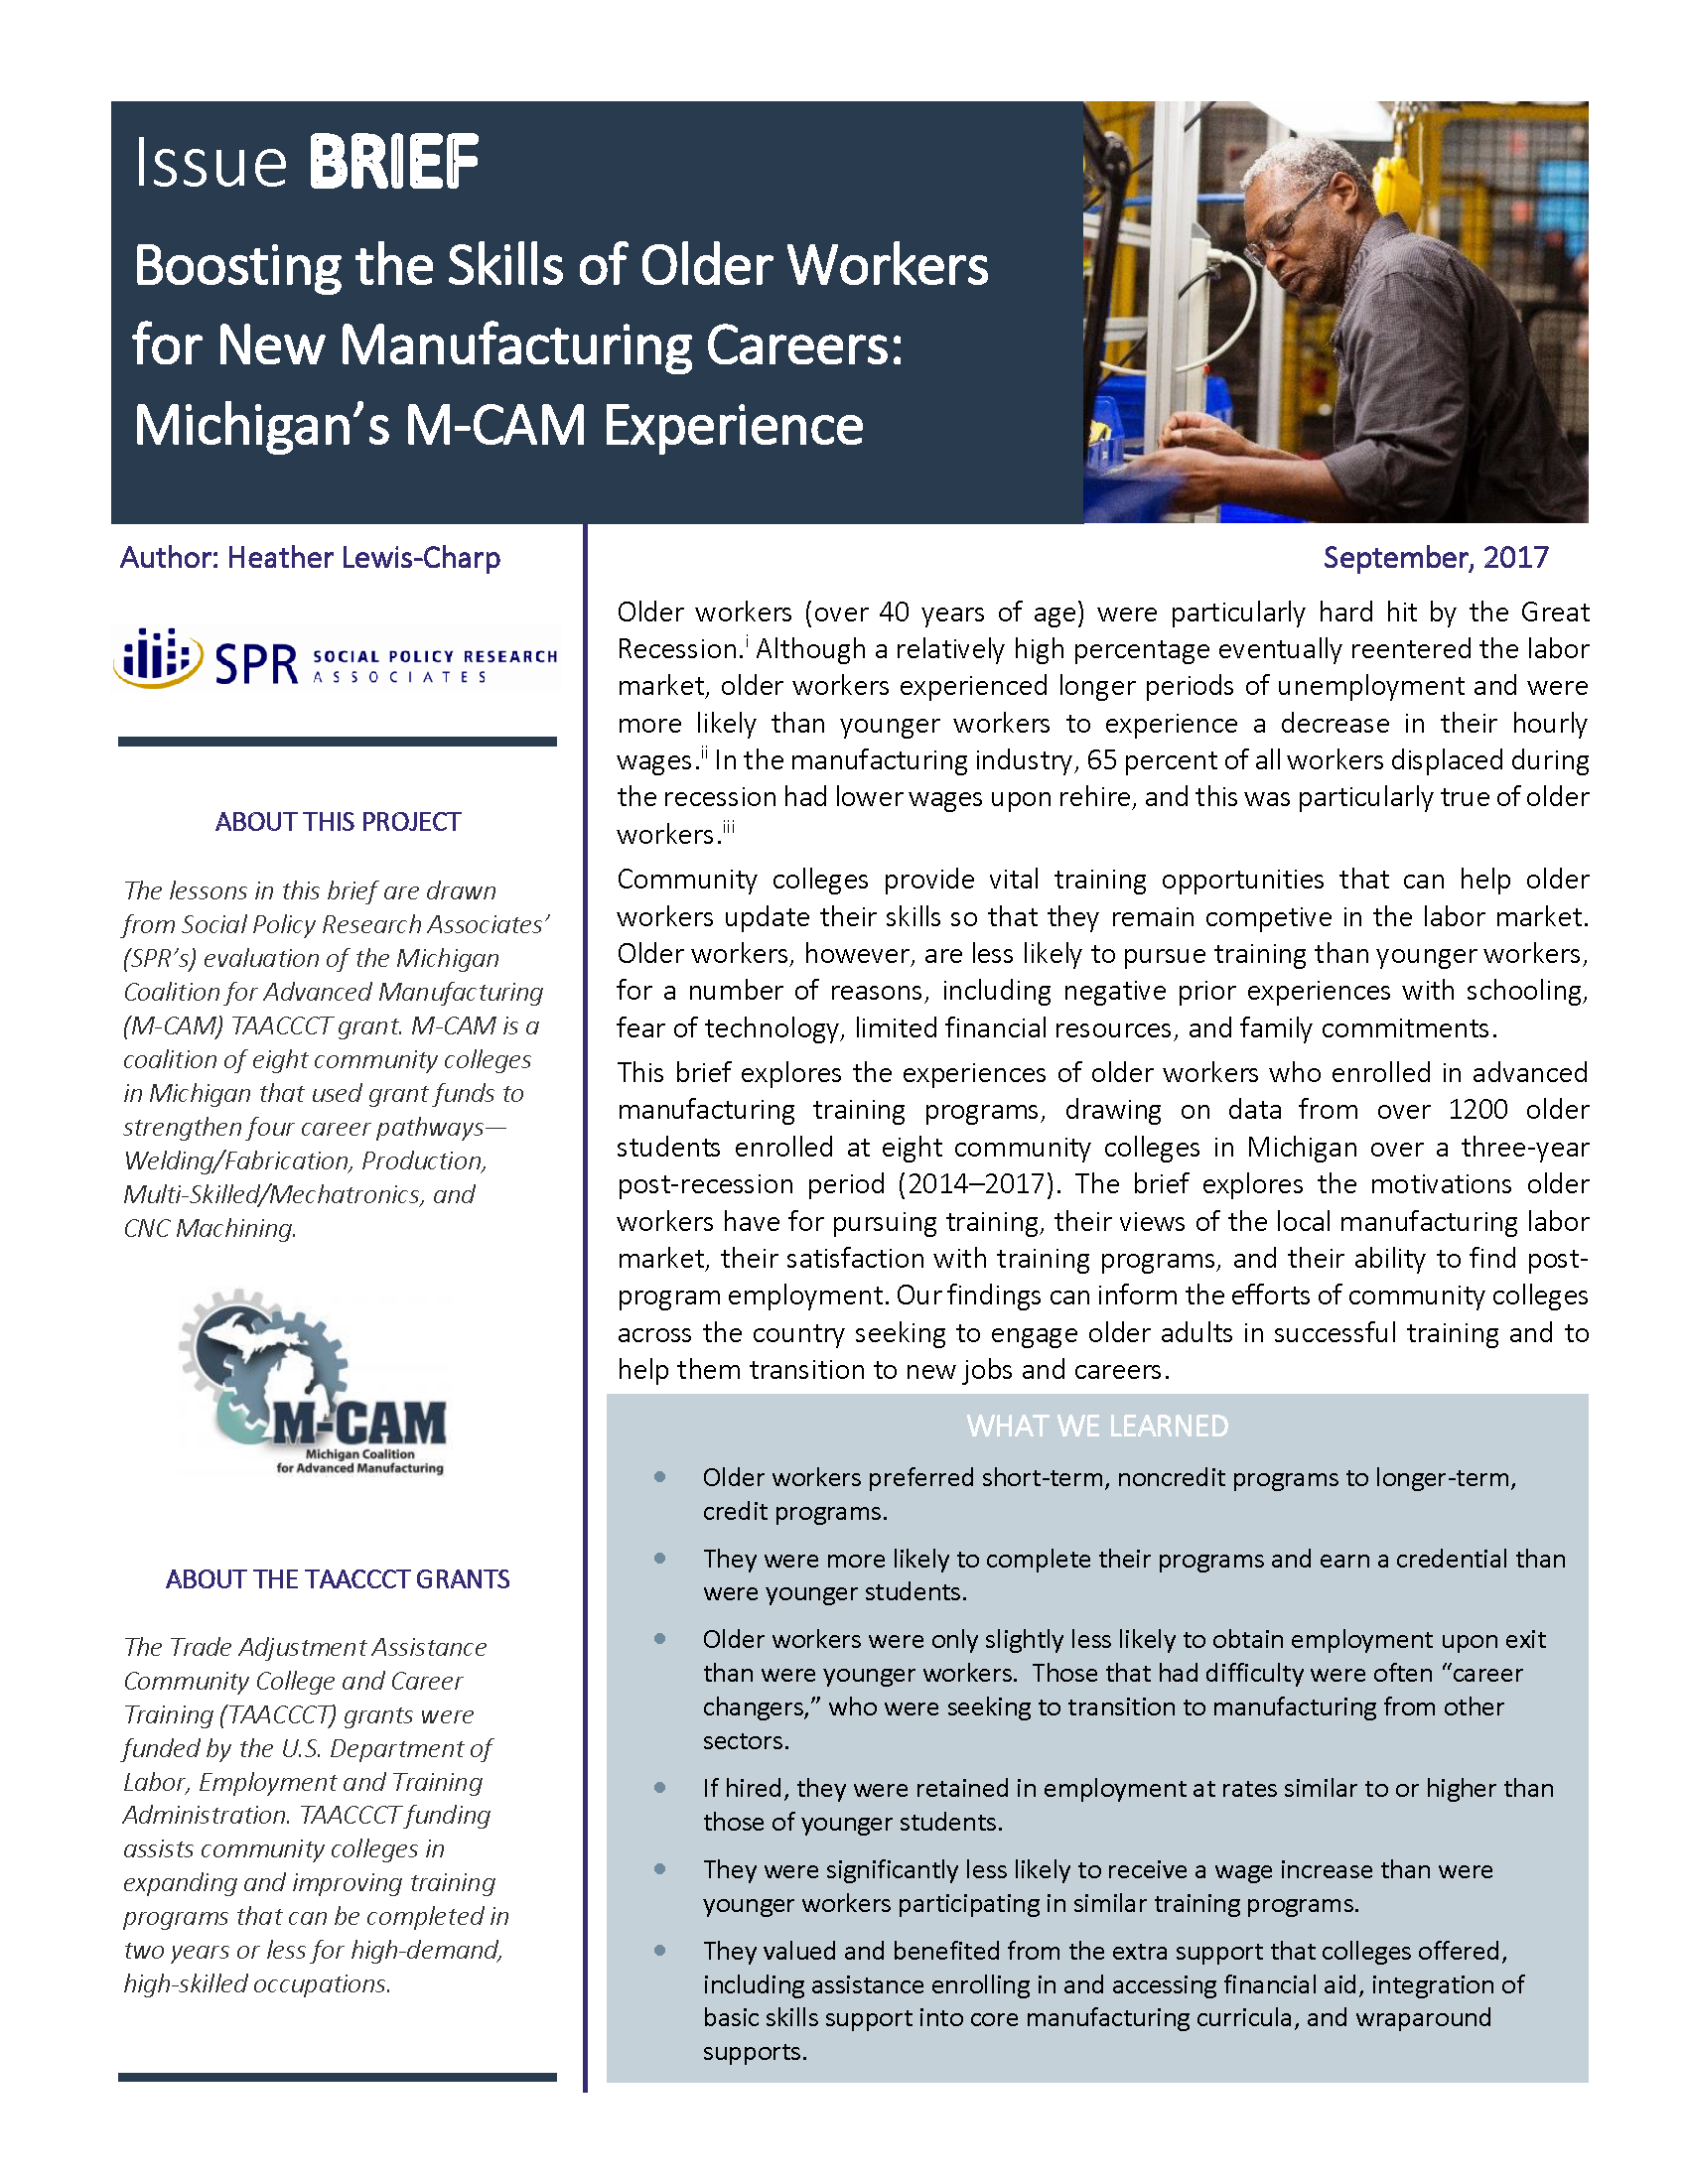 Cover of Boosting the Skills of Older Workers for New Manufacturing Careers: Michigan's M-CAM Experience Brief